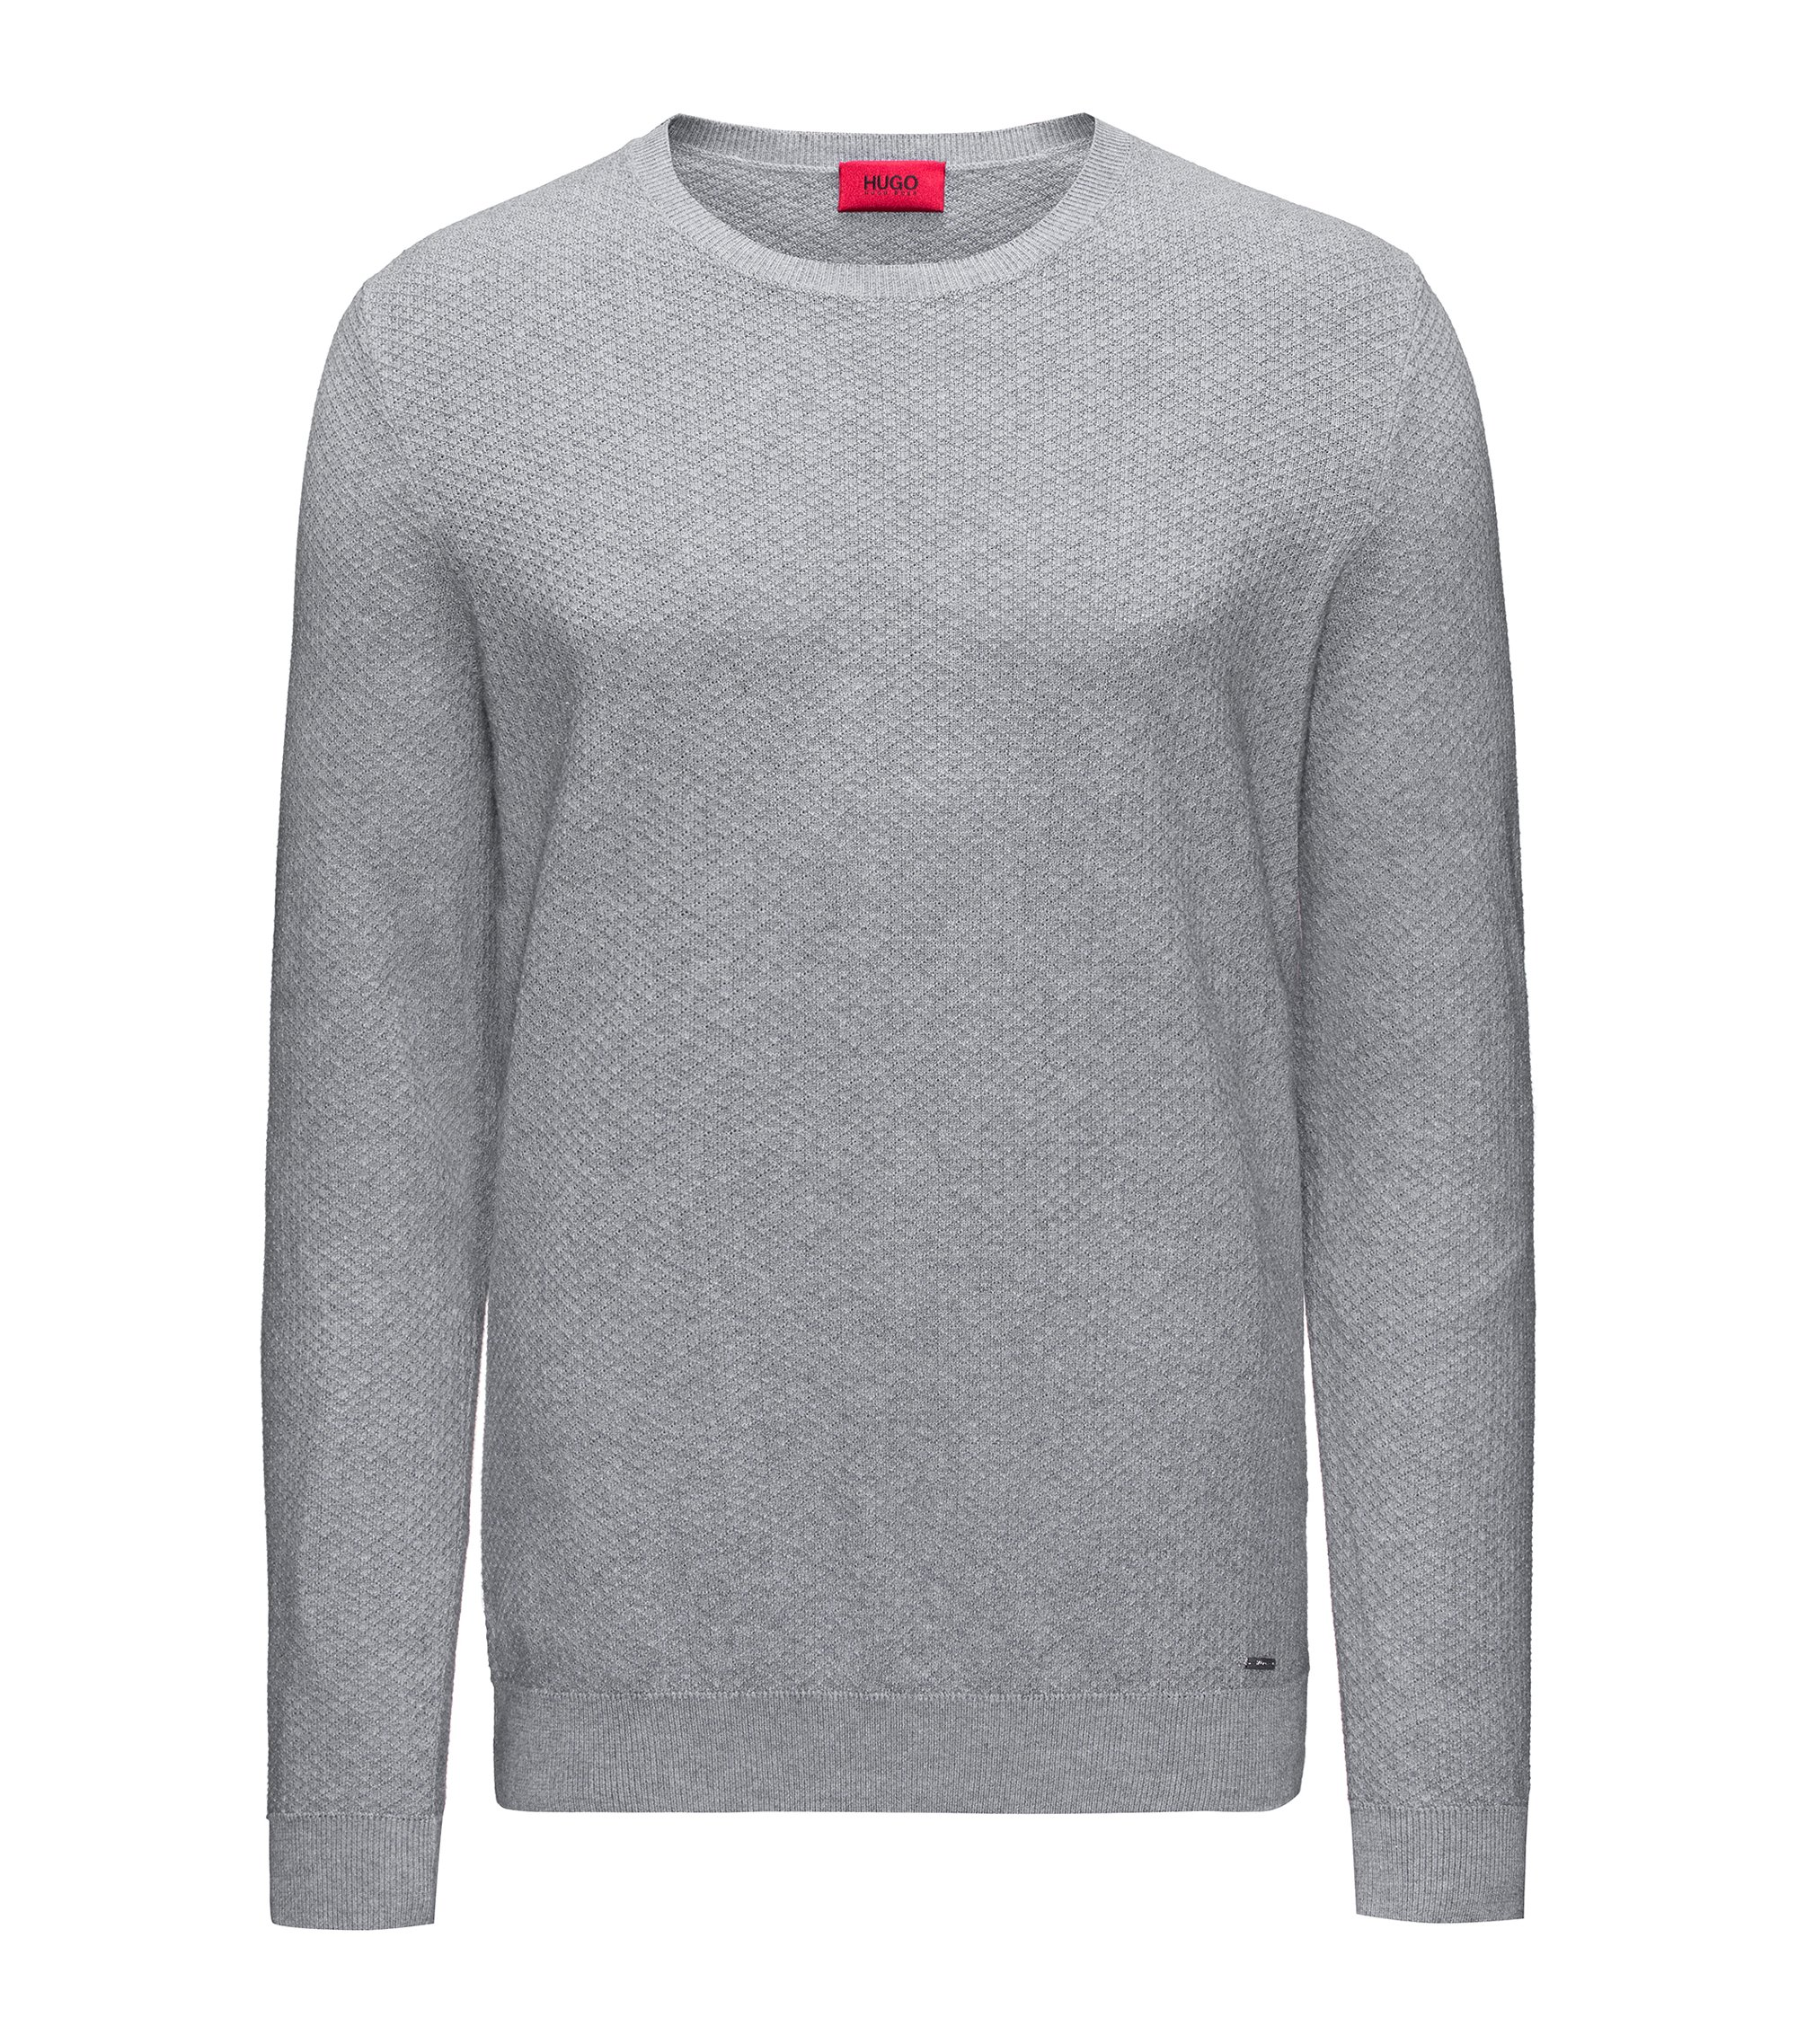 Crew-neck sweater in knitted cotton piqué, Grey